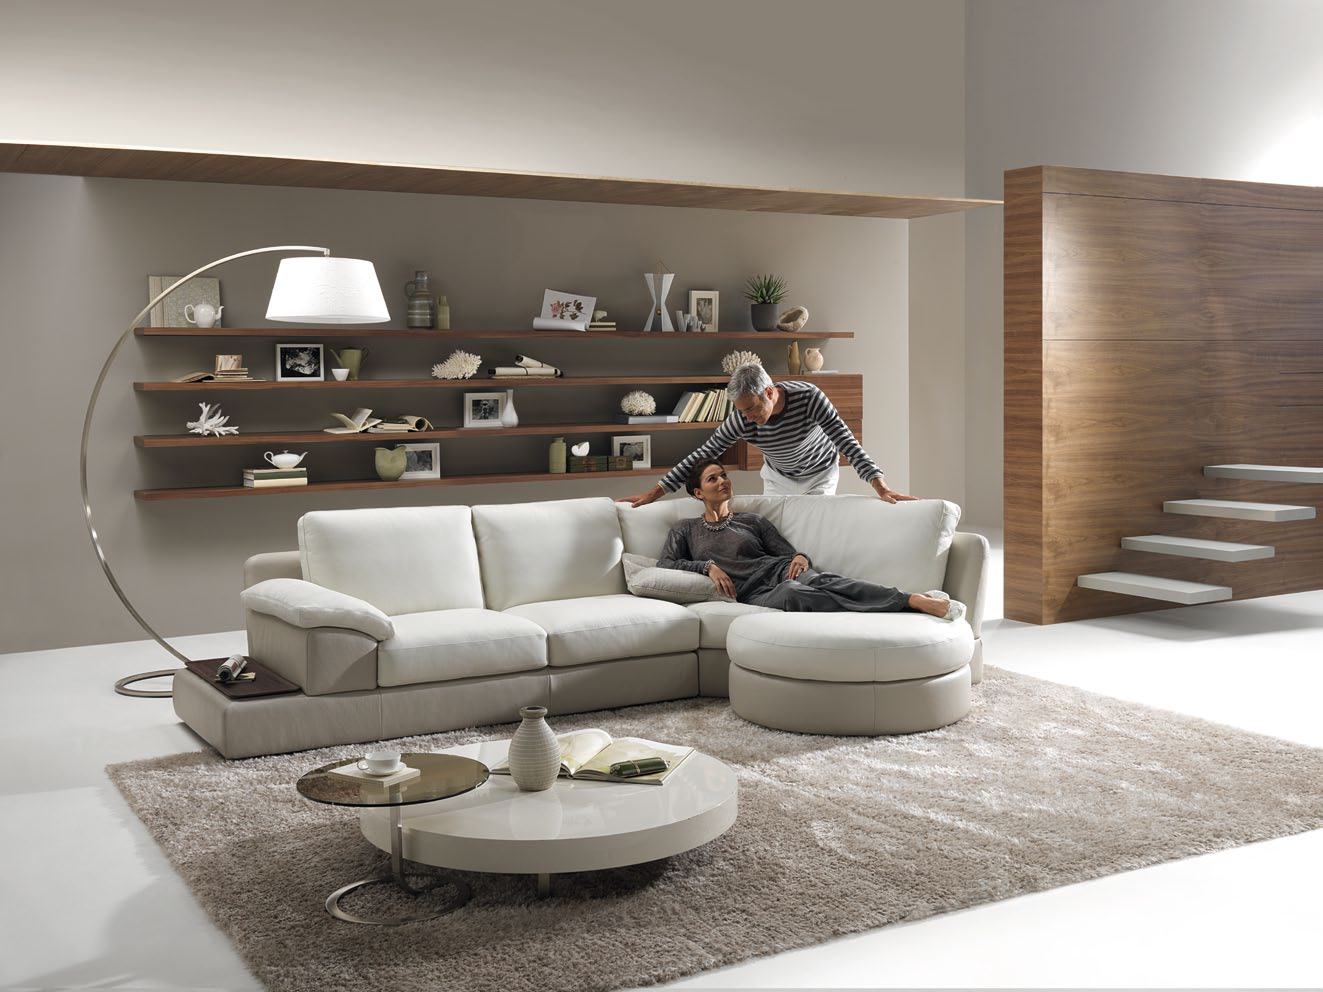 Interior Exterior Plan Use Modular Sofa And Be Able To